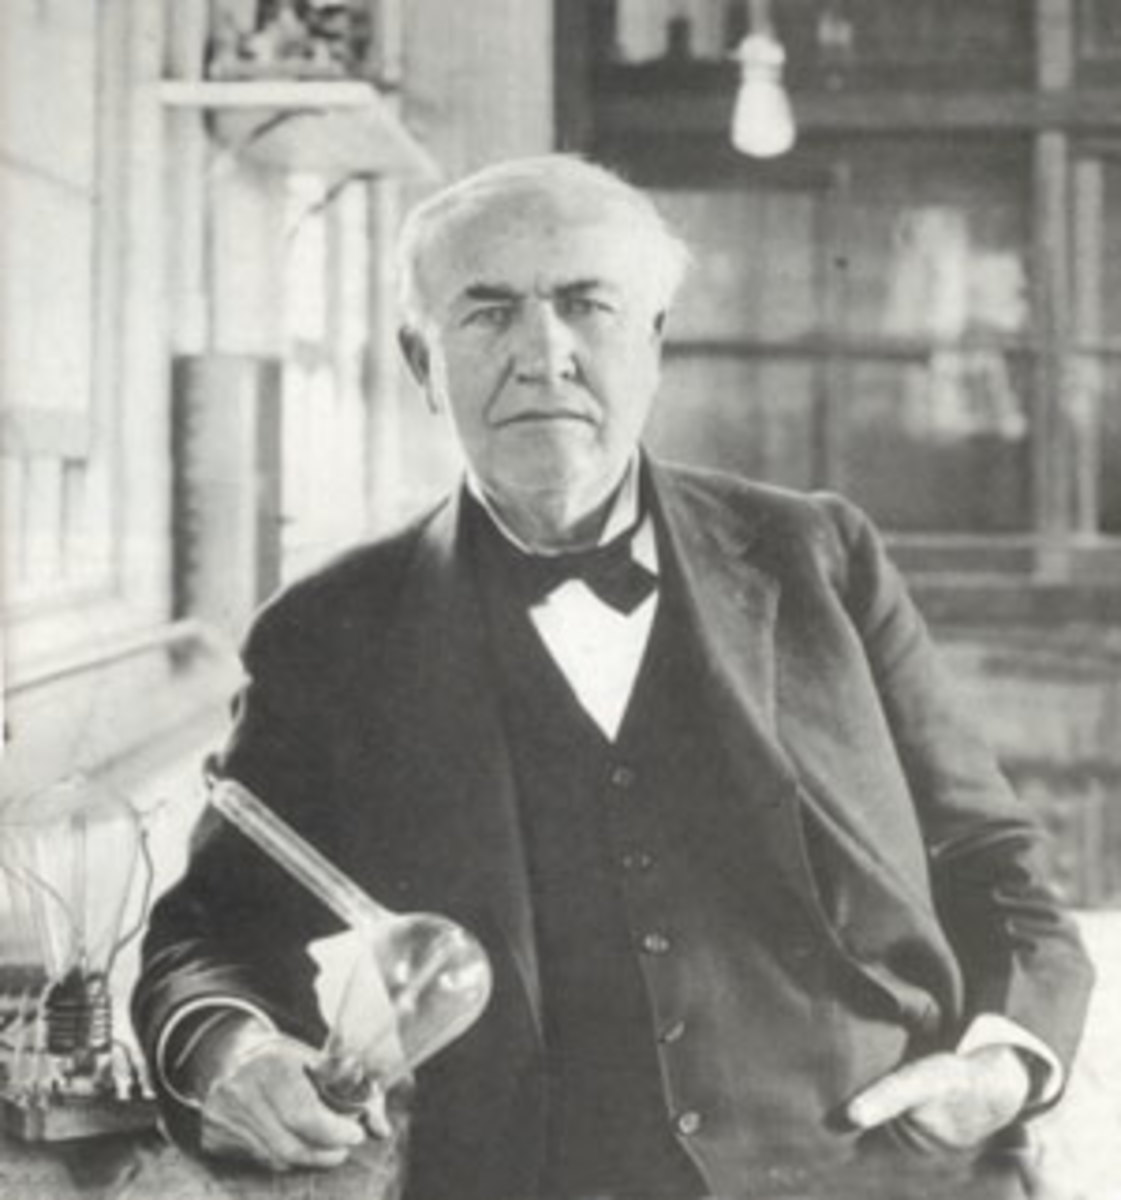 As he doggedly pursued his inventions, Thomas Edison endured repeated failure before achieving life changing innovations.